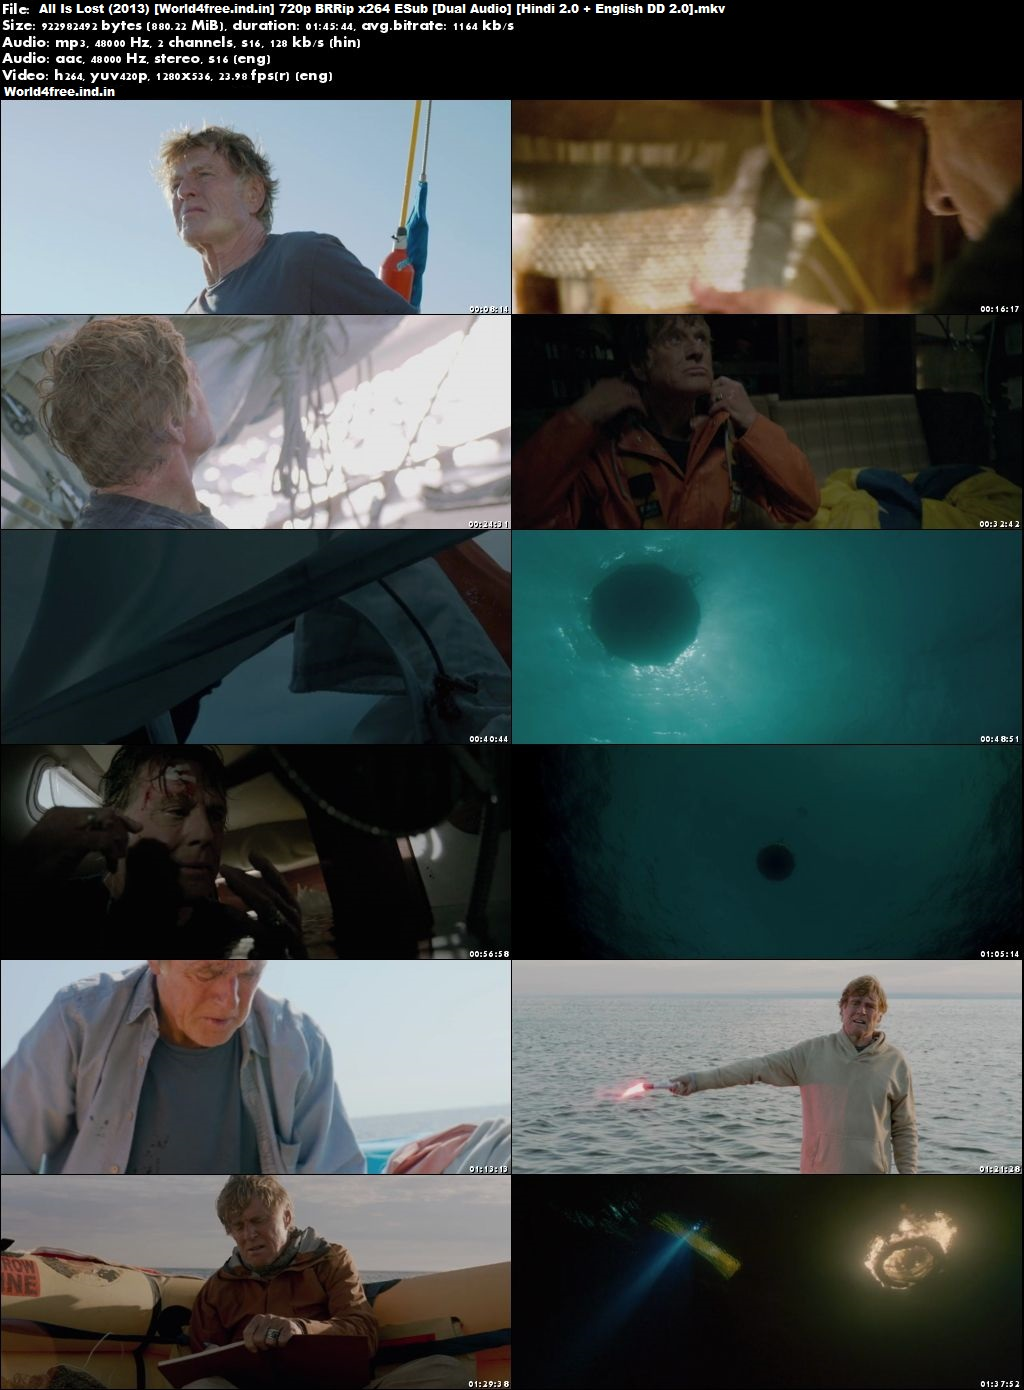 All Is Lost 2013 world4free.ind.in Hindi English BRRip 720p Dual Audio